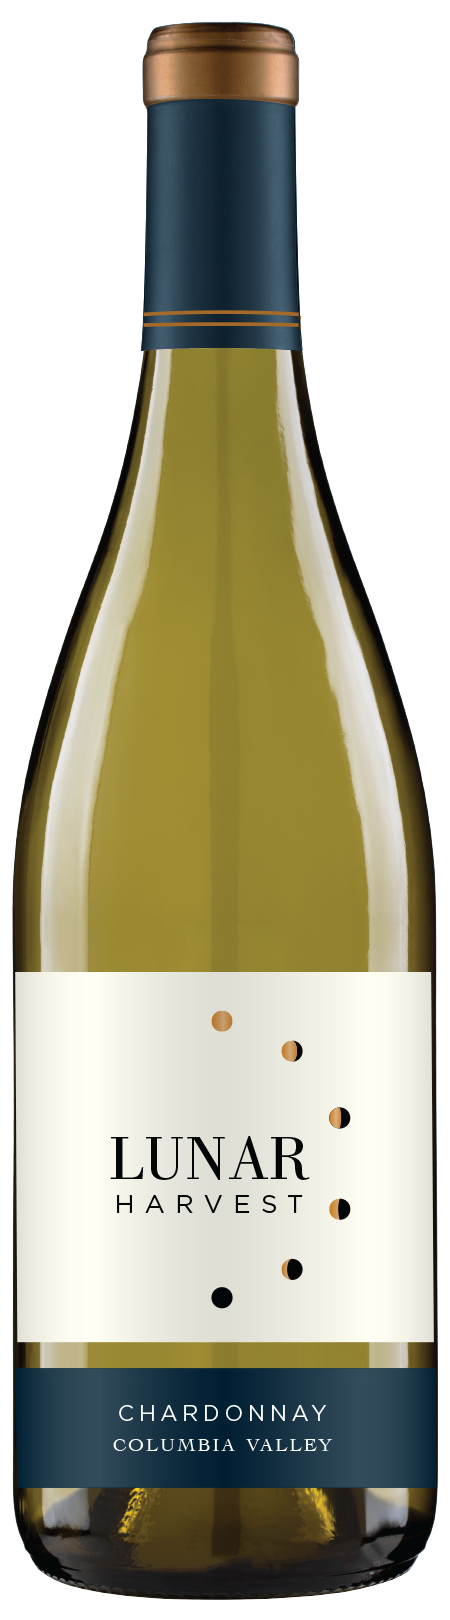 Lunar Harvest Chardonnay  - Columbia Valley AVATASTING NOTERefreshing flavors of apples, juicy pear and a hint of citrus lead to butterscotch and vanilla on the finish.FOOD PAIRINGCream sauce pasta dishes, soft cheeses, & roasted vegetablesWINE SPECSABV 13.9%TA 5.28pH 3.74